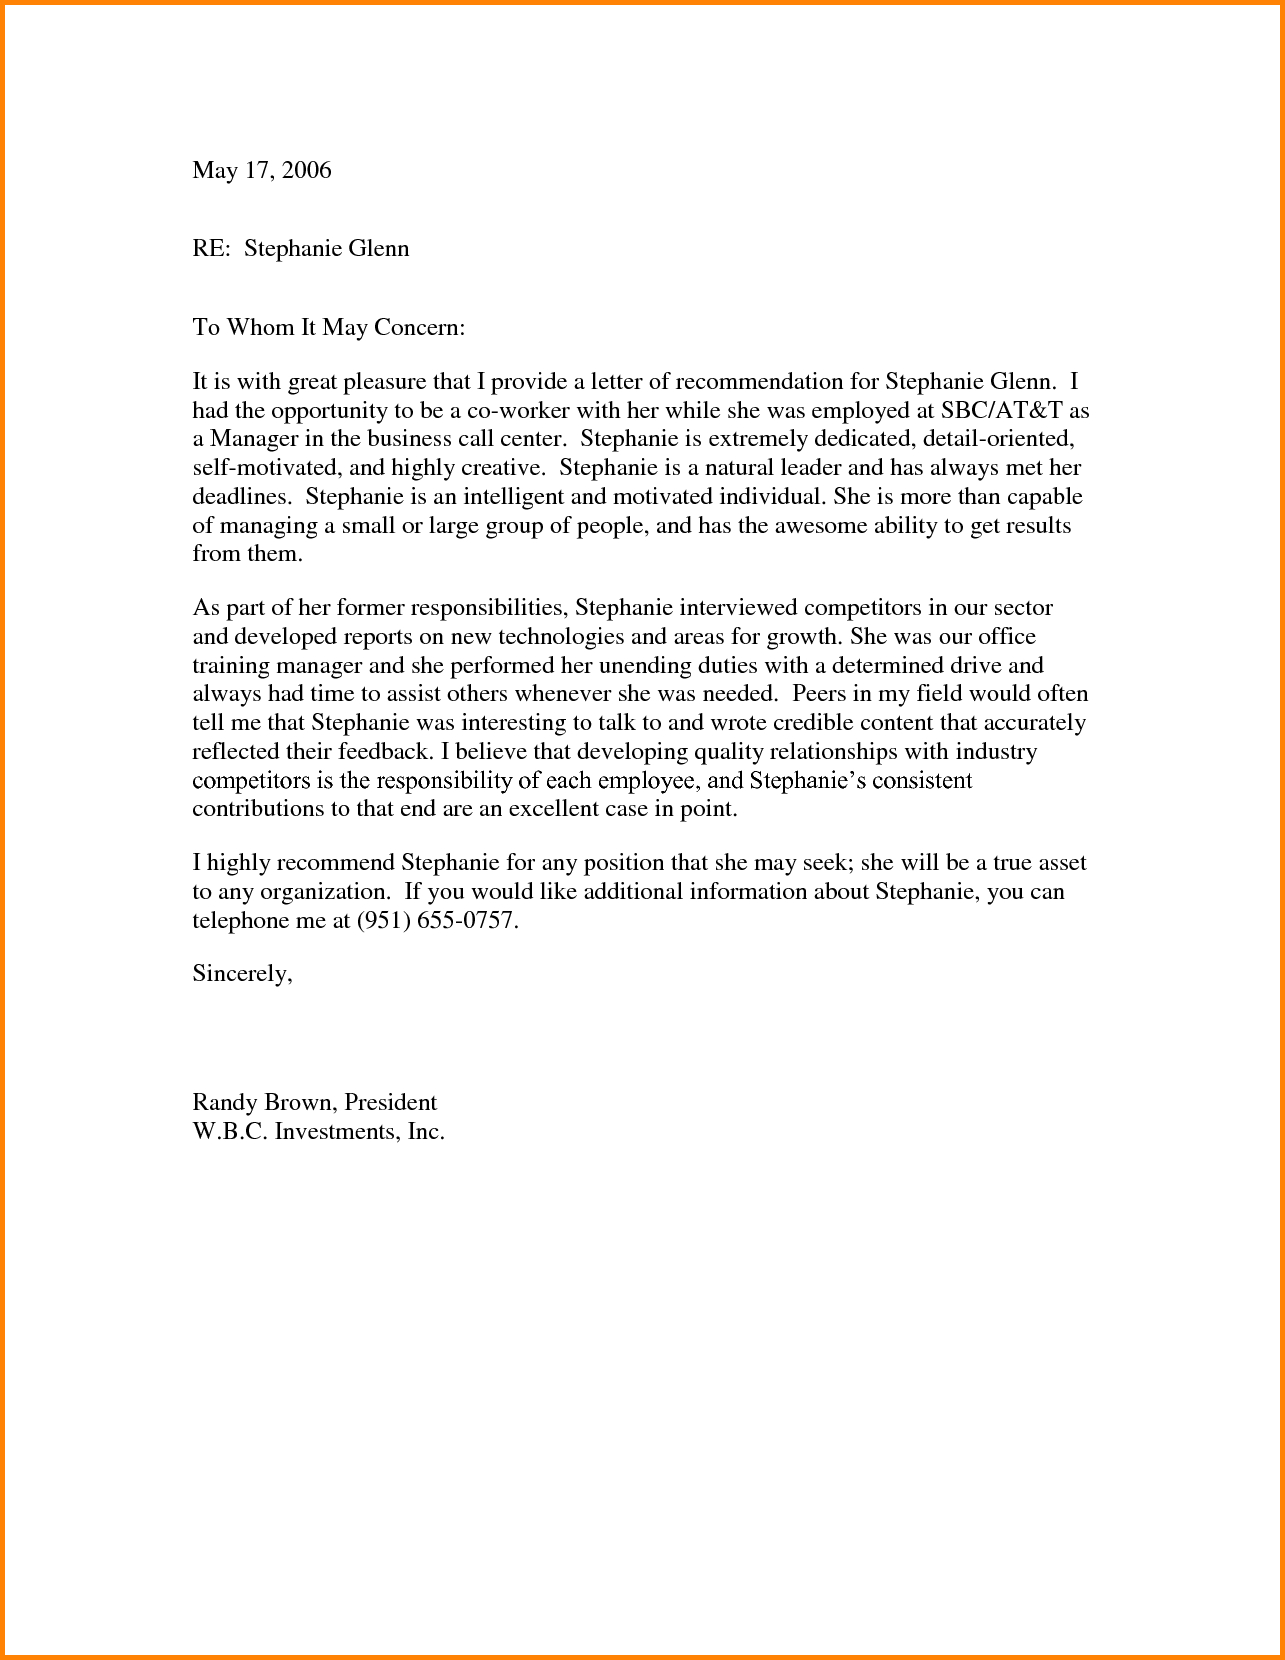 template for writing a letter of recommendation for a coworker samples